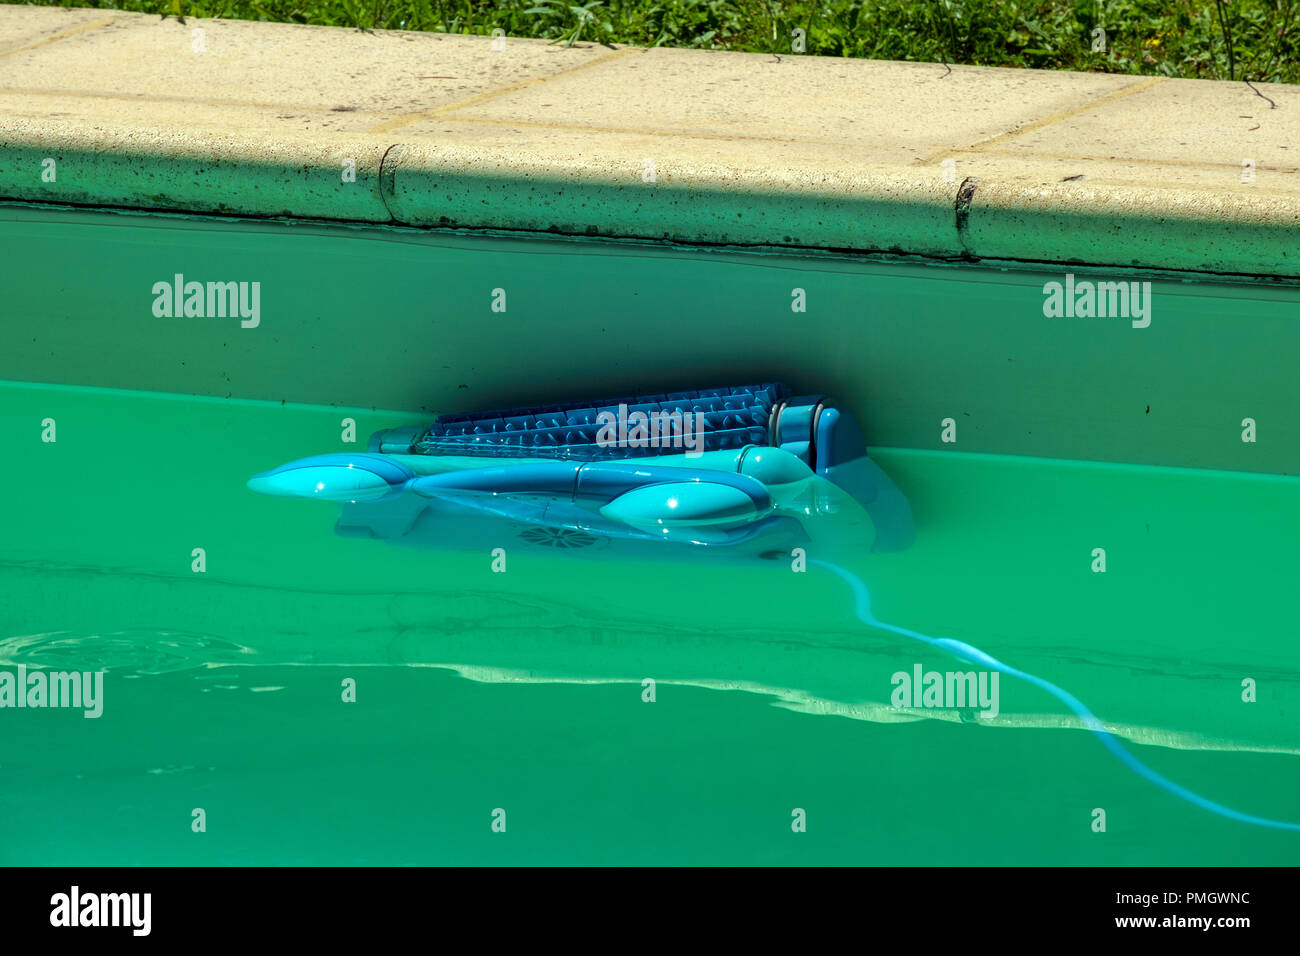 An automatic robot pool cleaner climbs the side of a cloudy ...